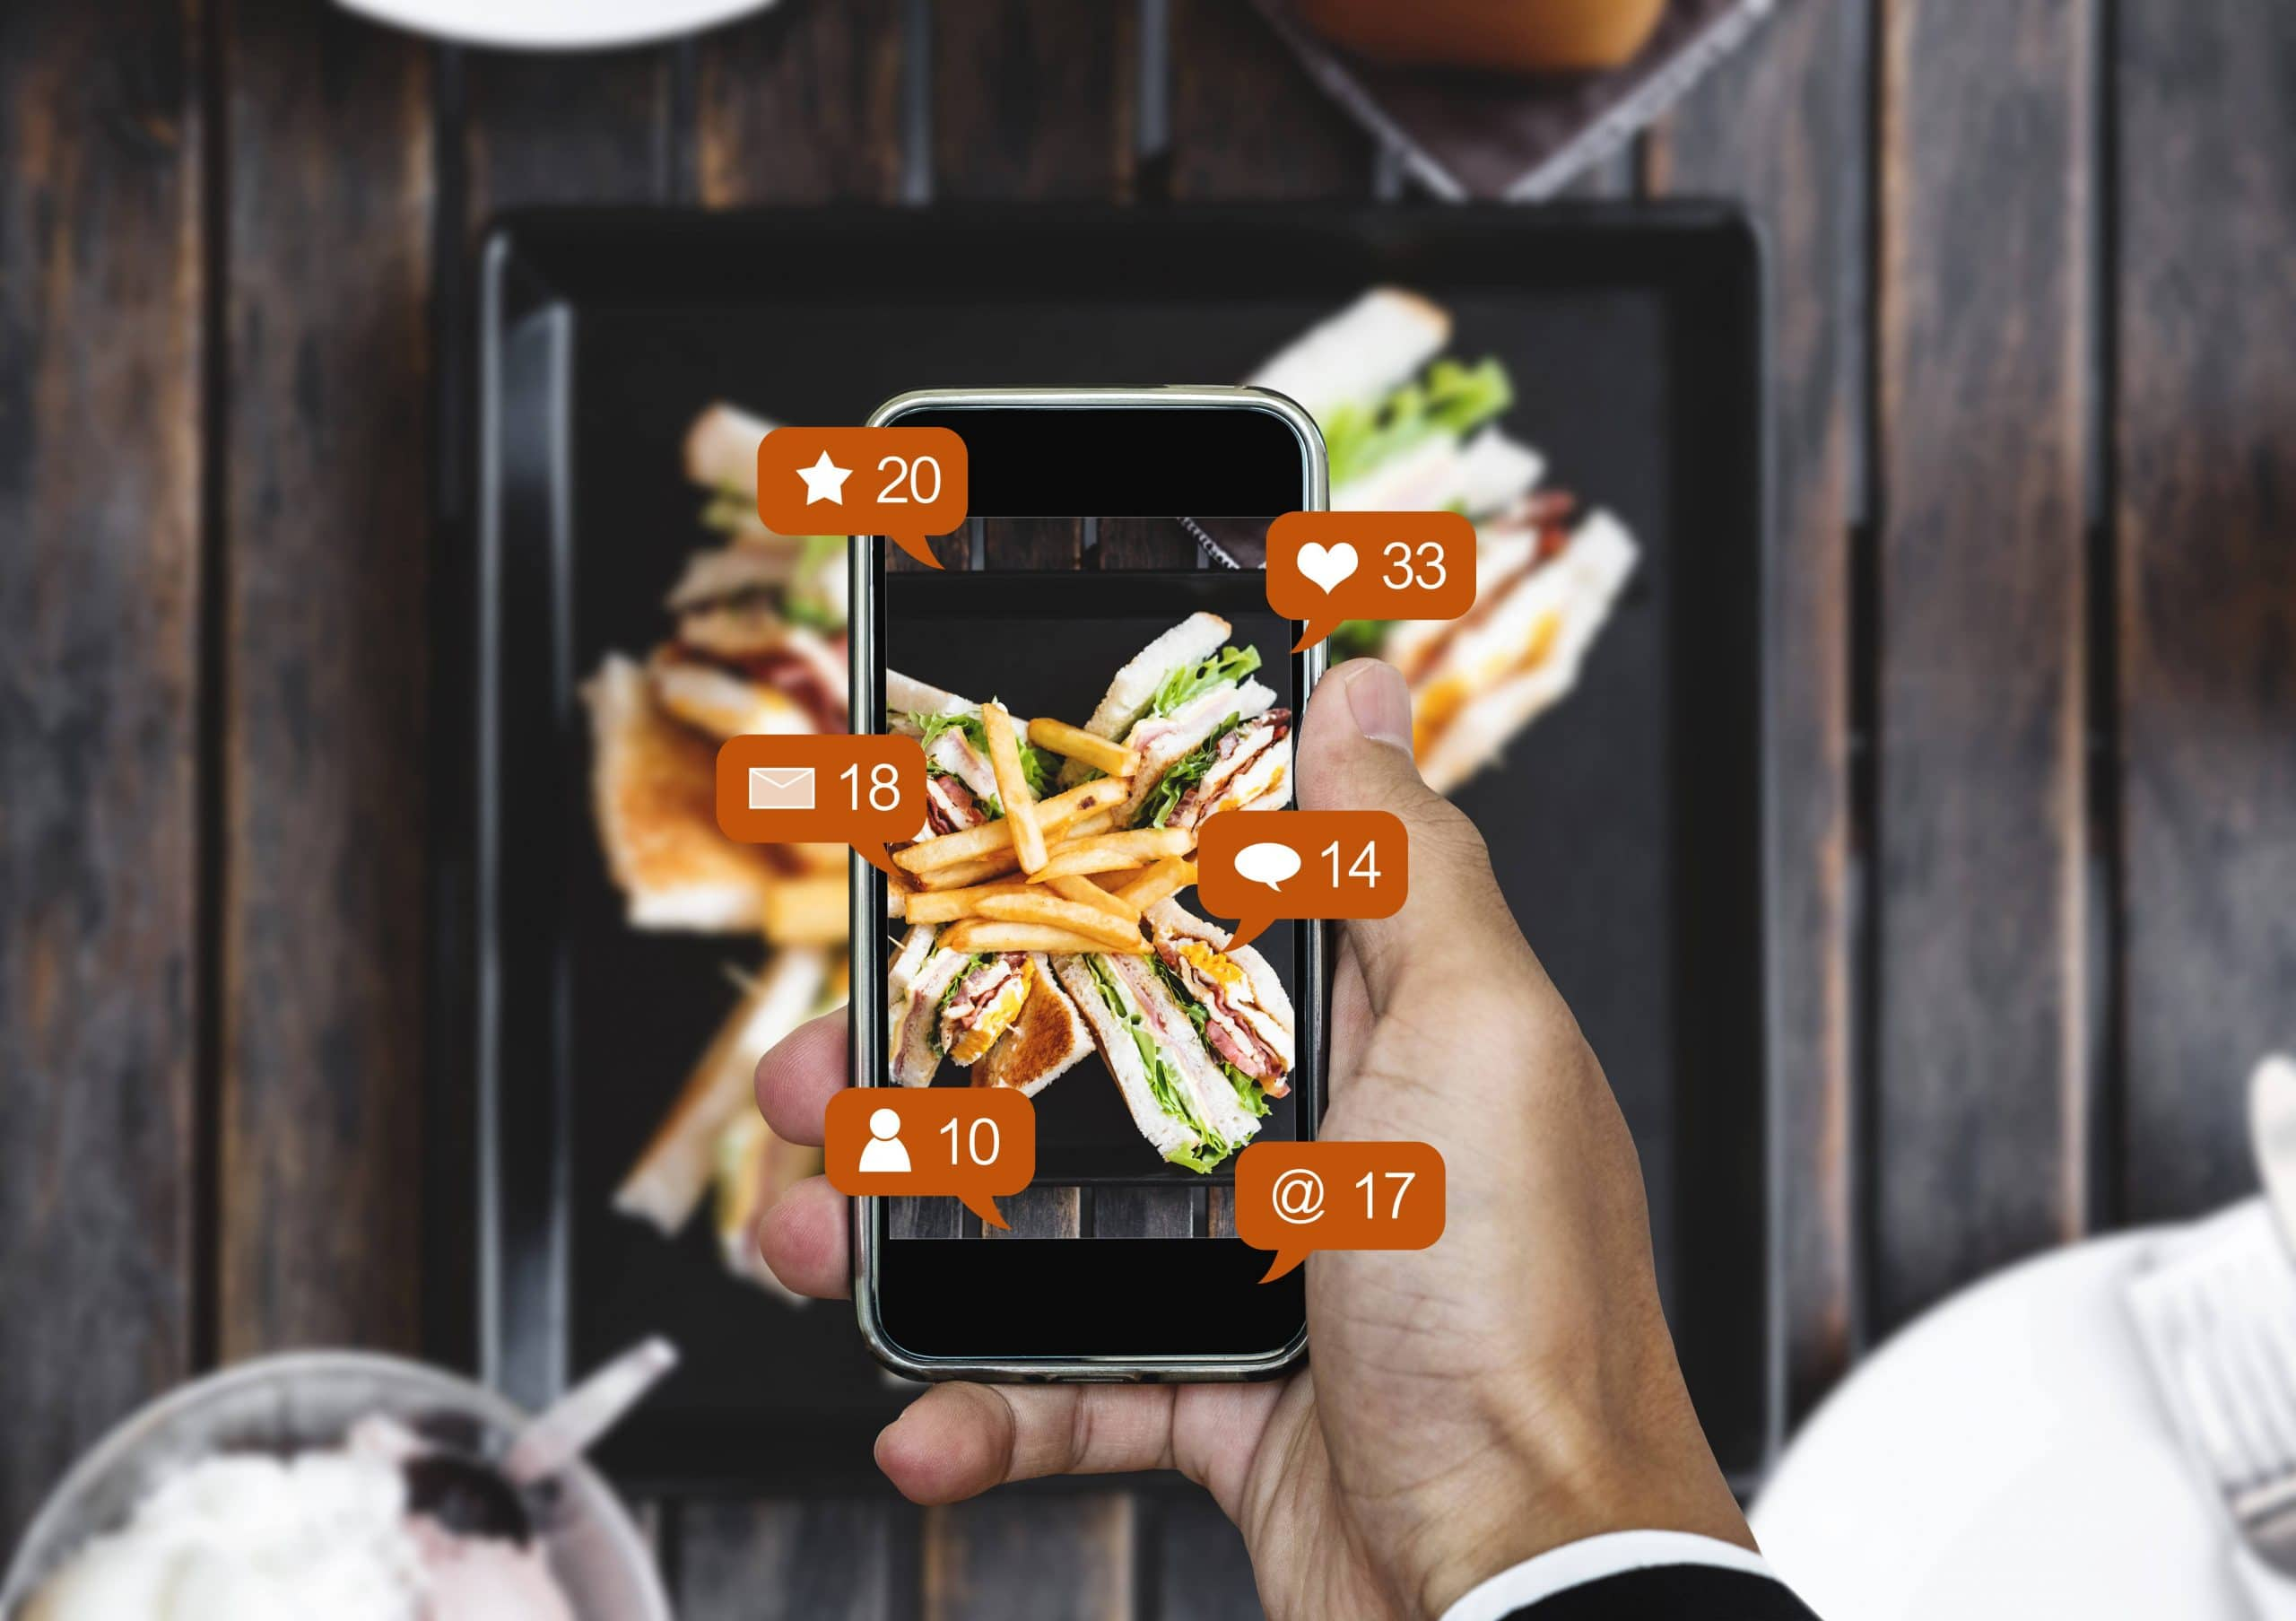 4 More Tips to Improve Your Digital Marketing for Restaurants featured image